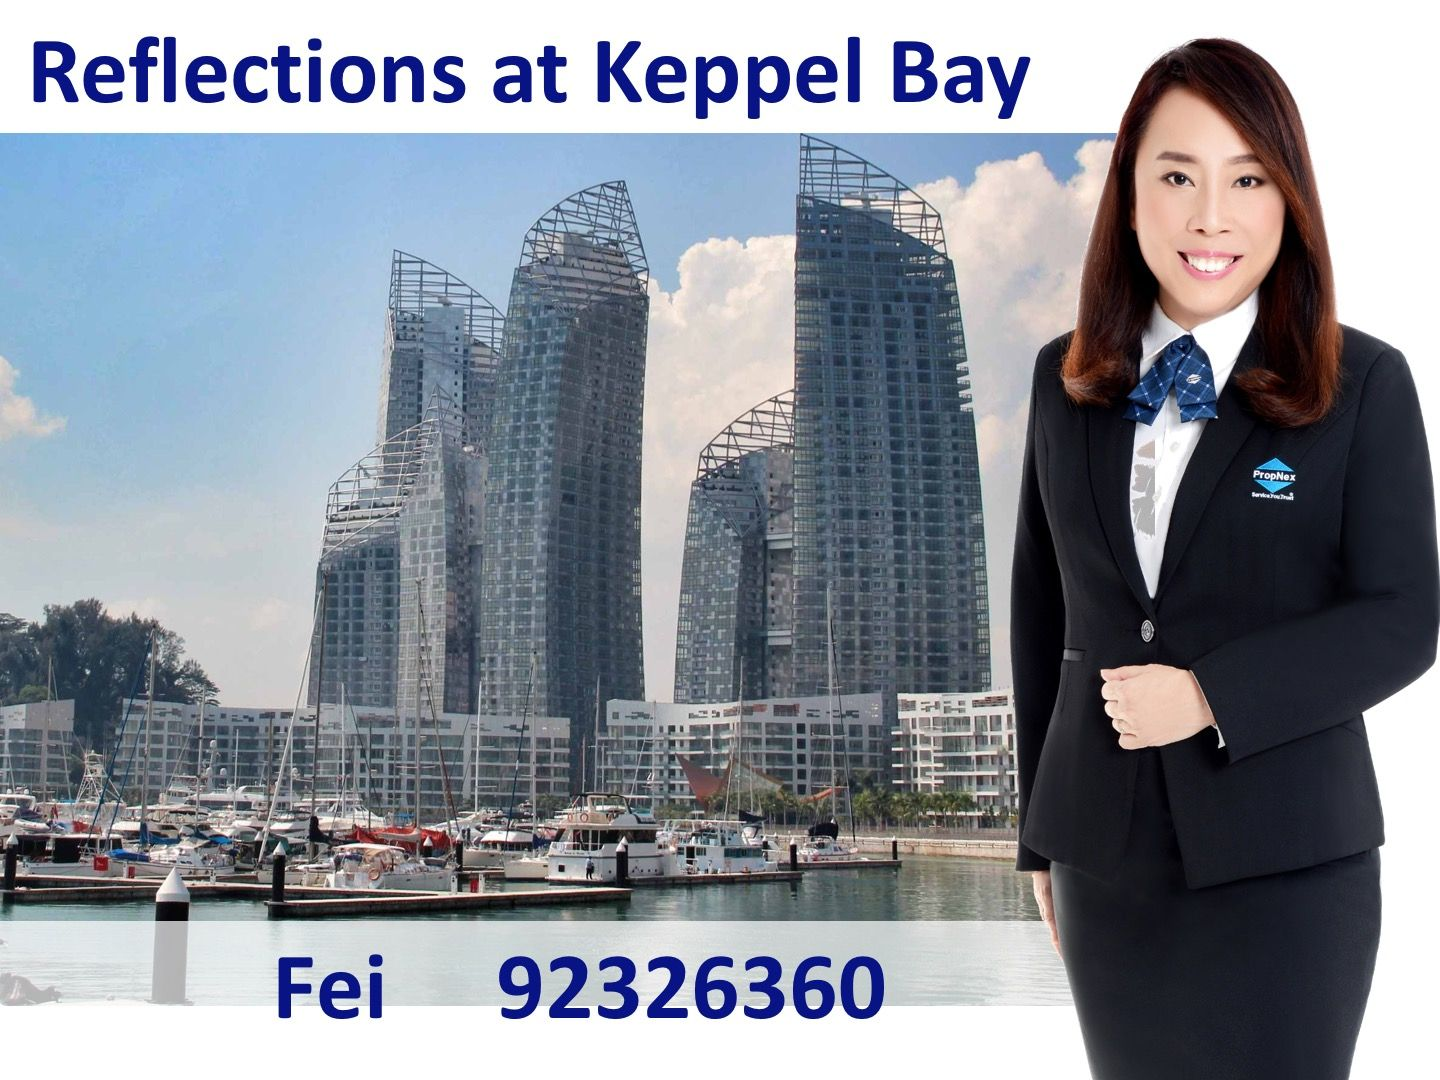 Fei is a Property Agent with the largest Property Agency in